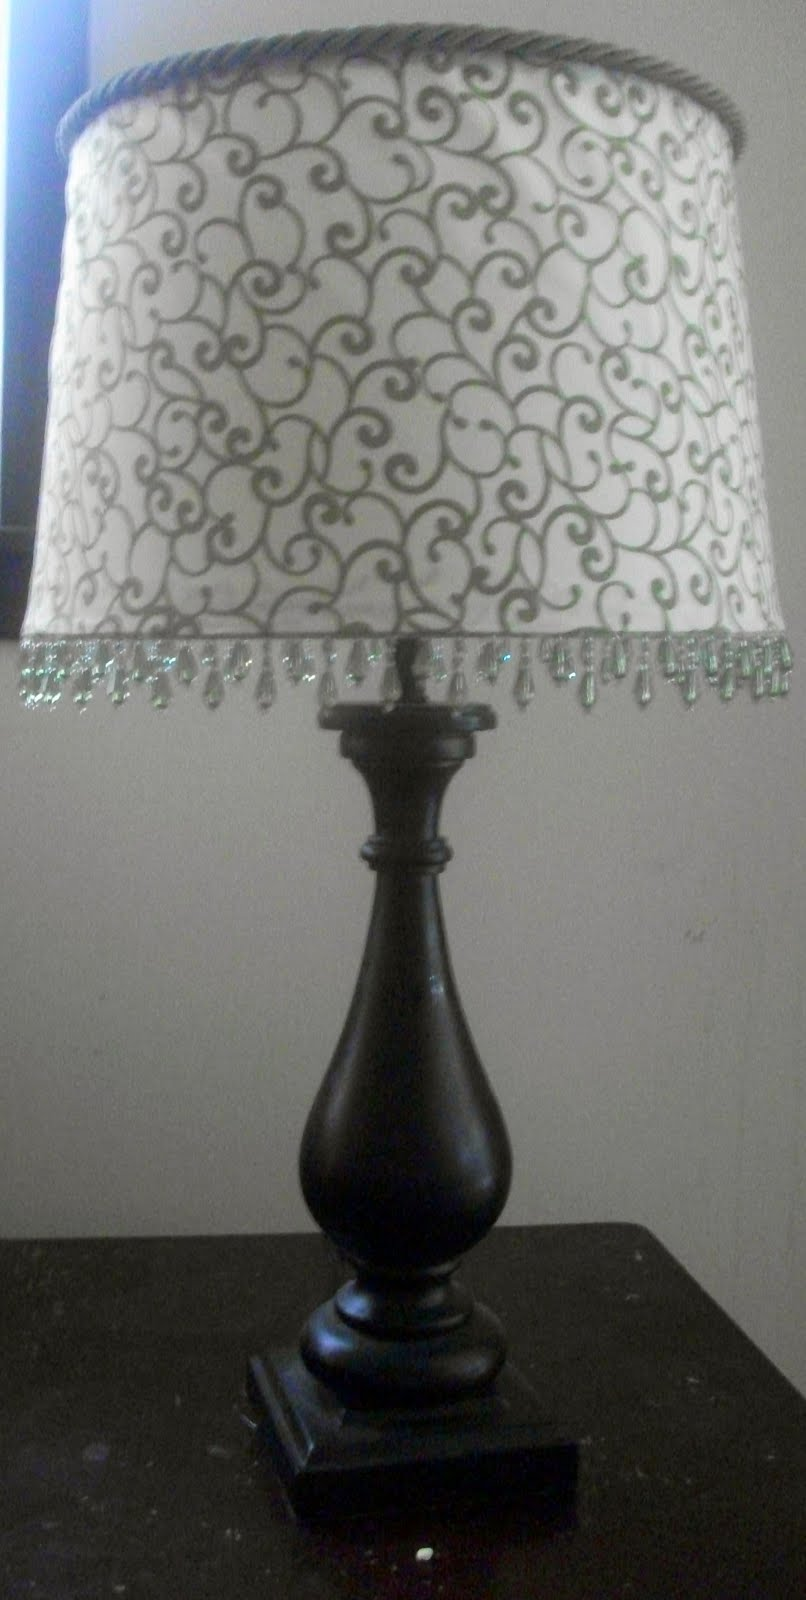 Thrifty crafty girl i 39 ve succumbed to peer pressure for Redo lamp shades